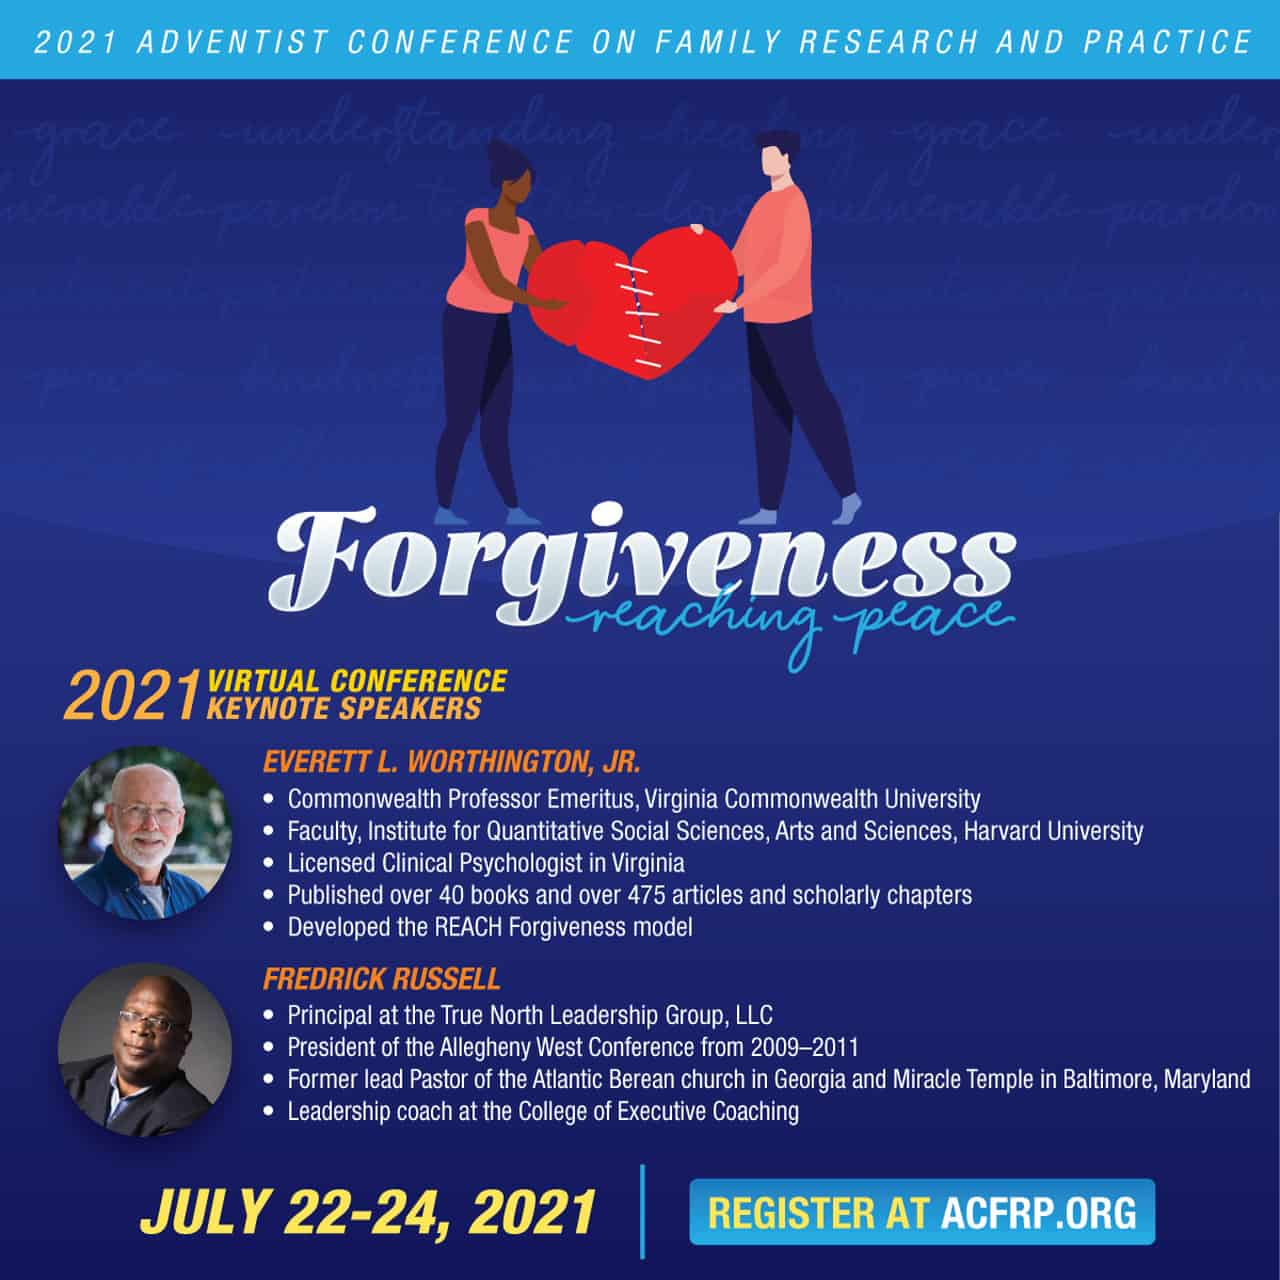 Flyer for Adventist Conference on Family Research and Practice